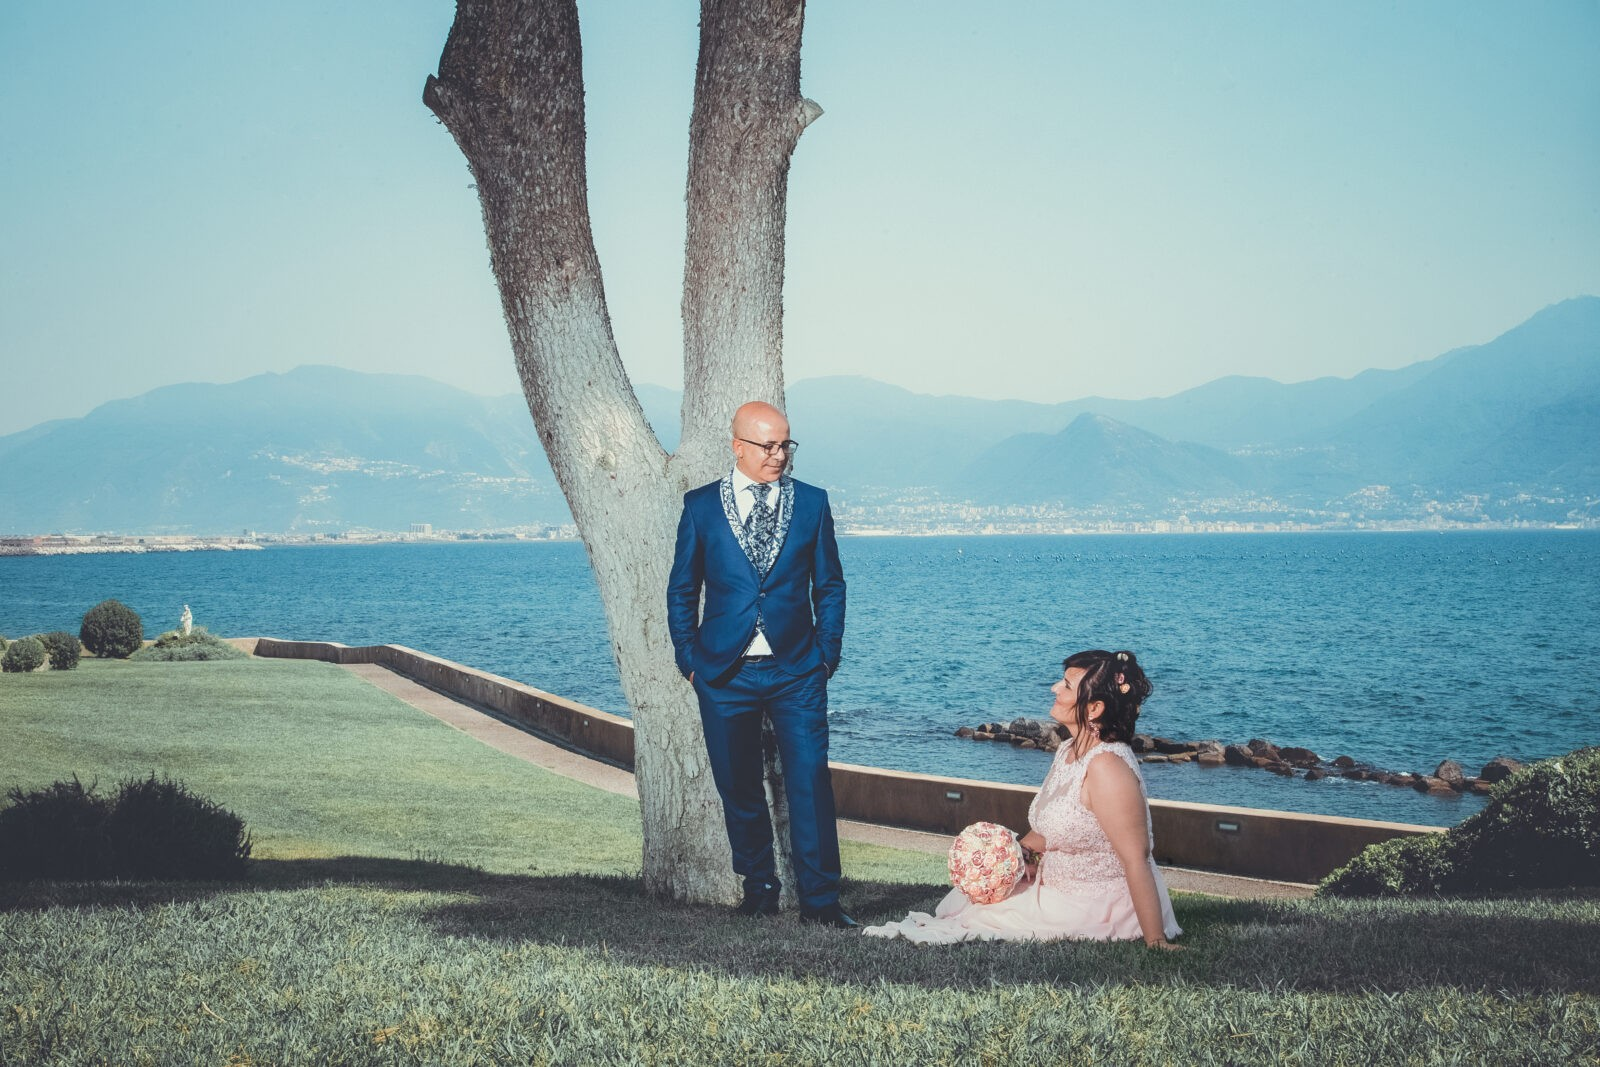 Emanuele Angerami, Emanuele Angerami fotografo, Emanuele Angerami Photographer, Emanuele Angerami fotografo caserta, Emanuele Angerami fotografo campania, Emanuele Angerami fotografo matrimoni, matrimoni, matrimoni campania, fotografo campania, fotografi campania, wedding campania, wedding, fotografi caserta, fotografo aversa, Emanuele Angerami fotografo aversa